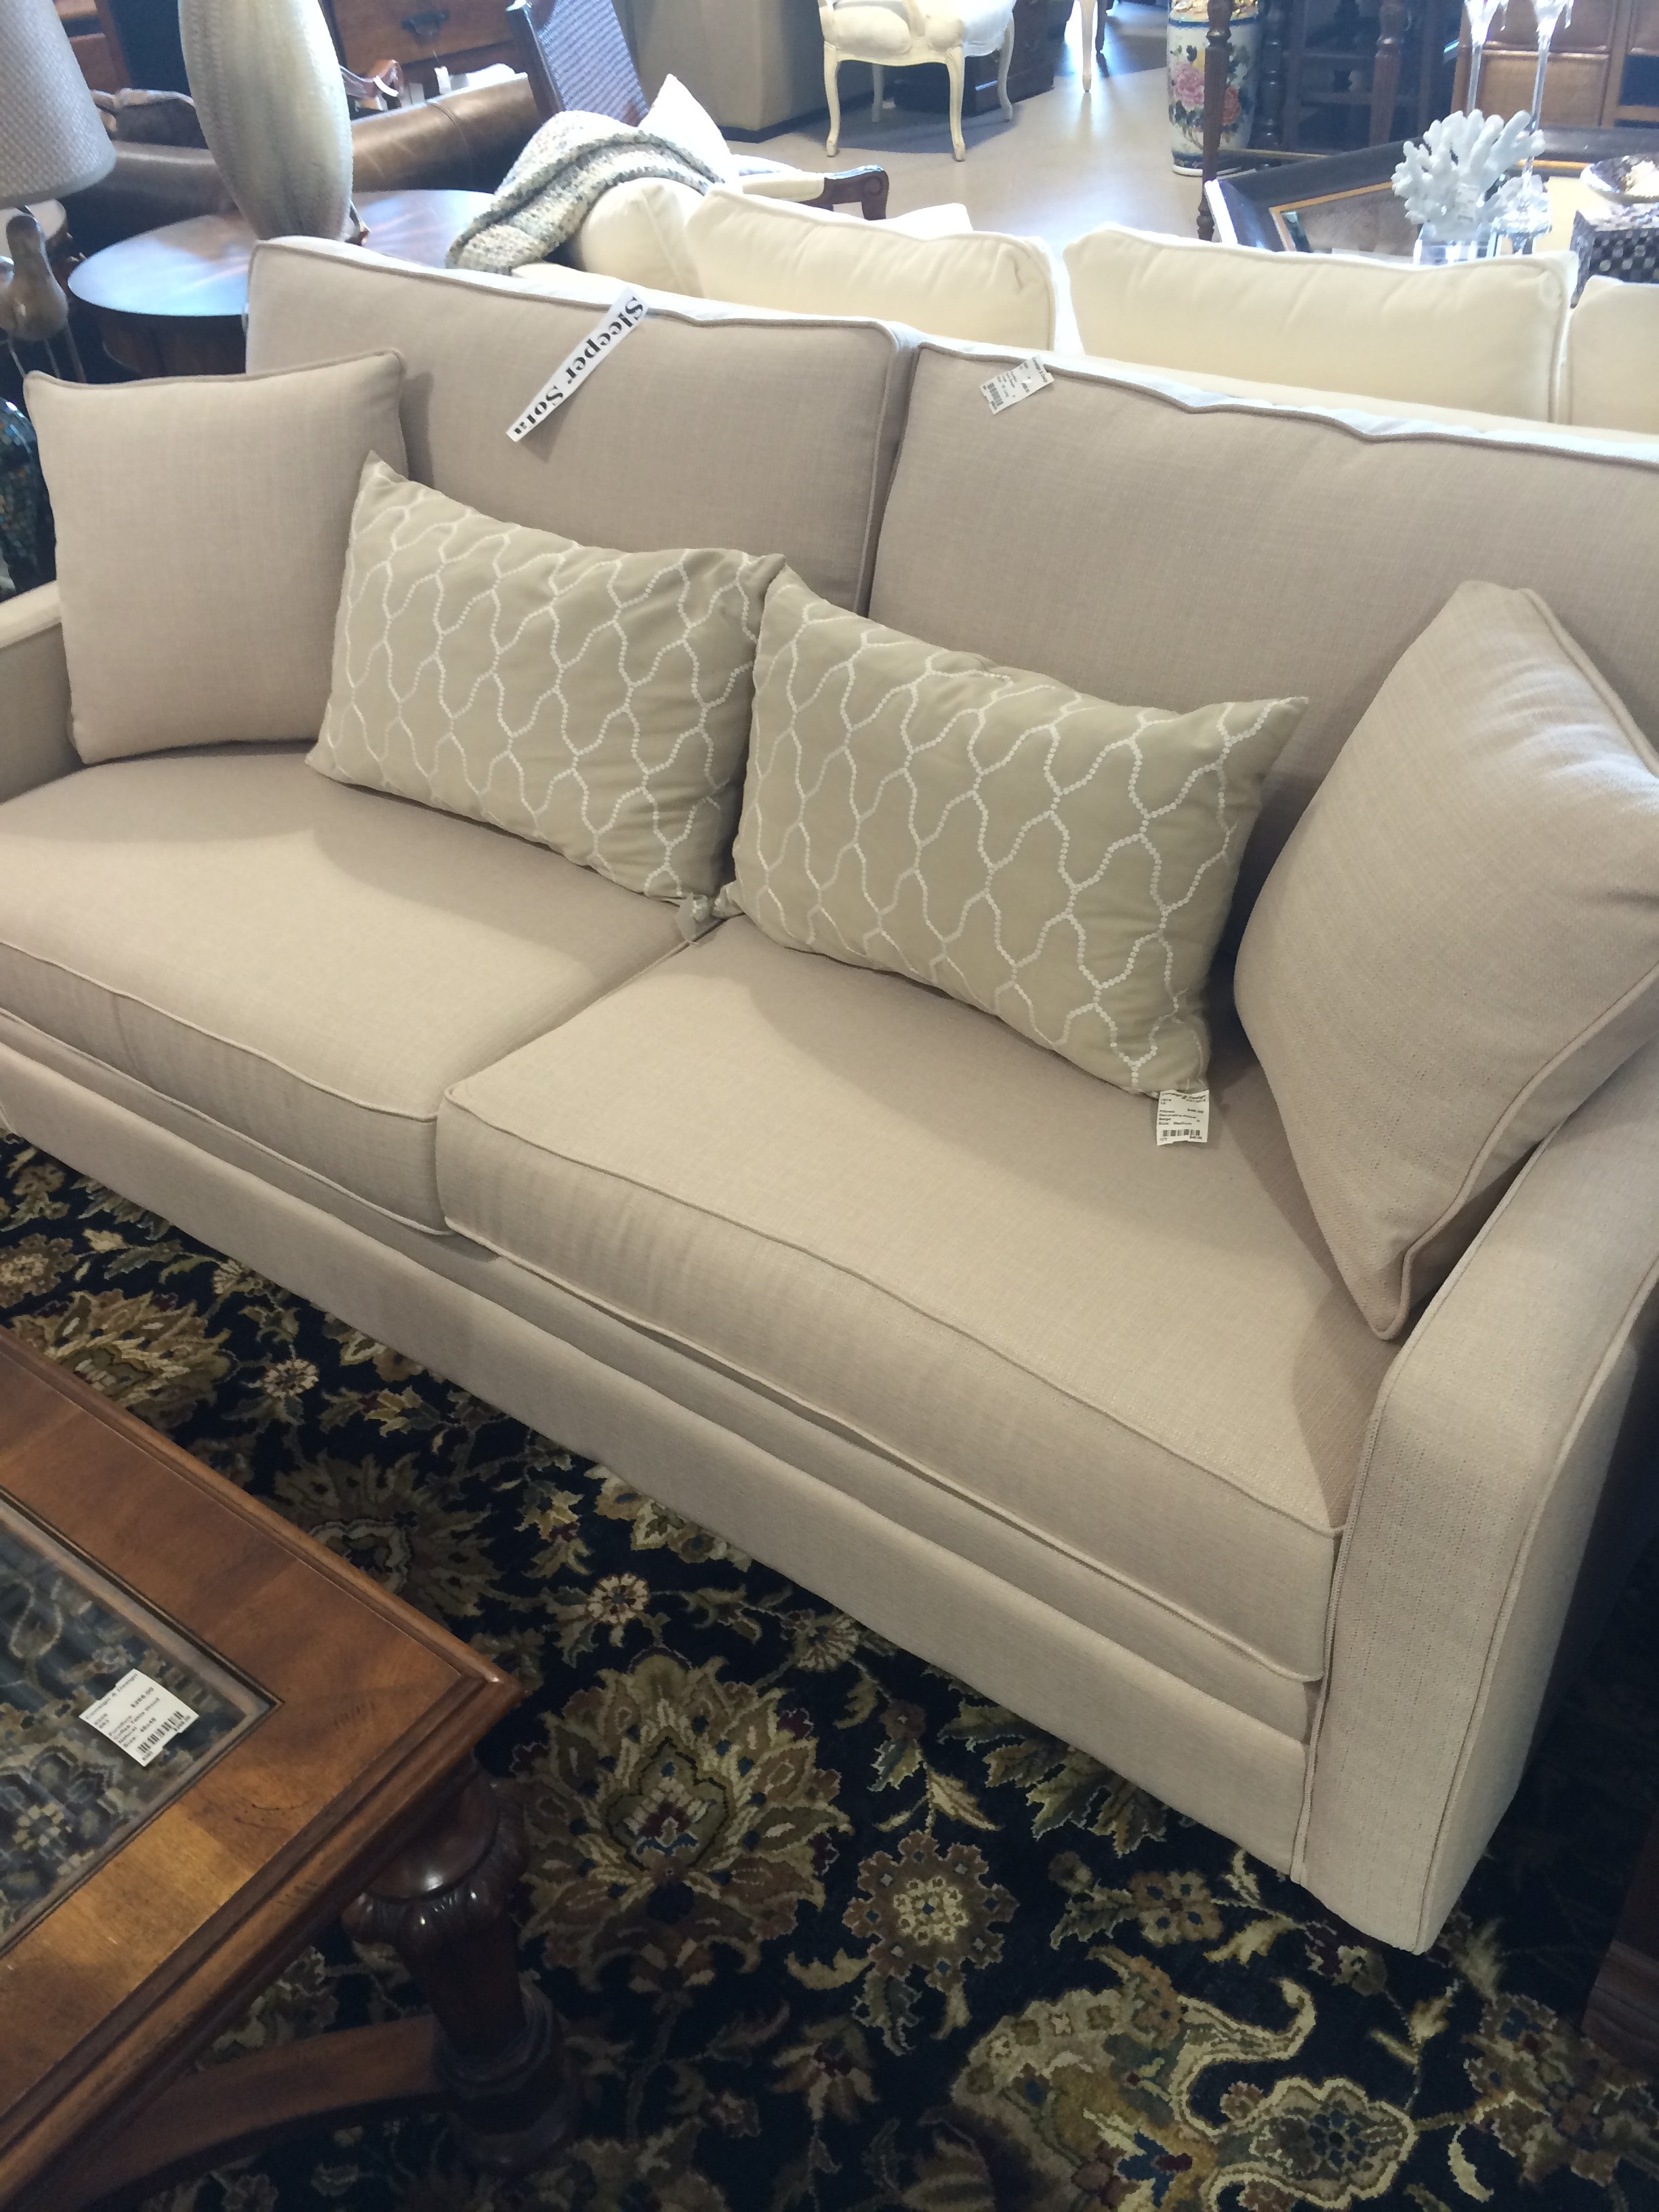 Surprising Sleeper Sofa Consign Design Bonita Springs Fl Consignment Andrewgaddart Wooden Chair Designs For Living Room Andrewgaddartcom